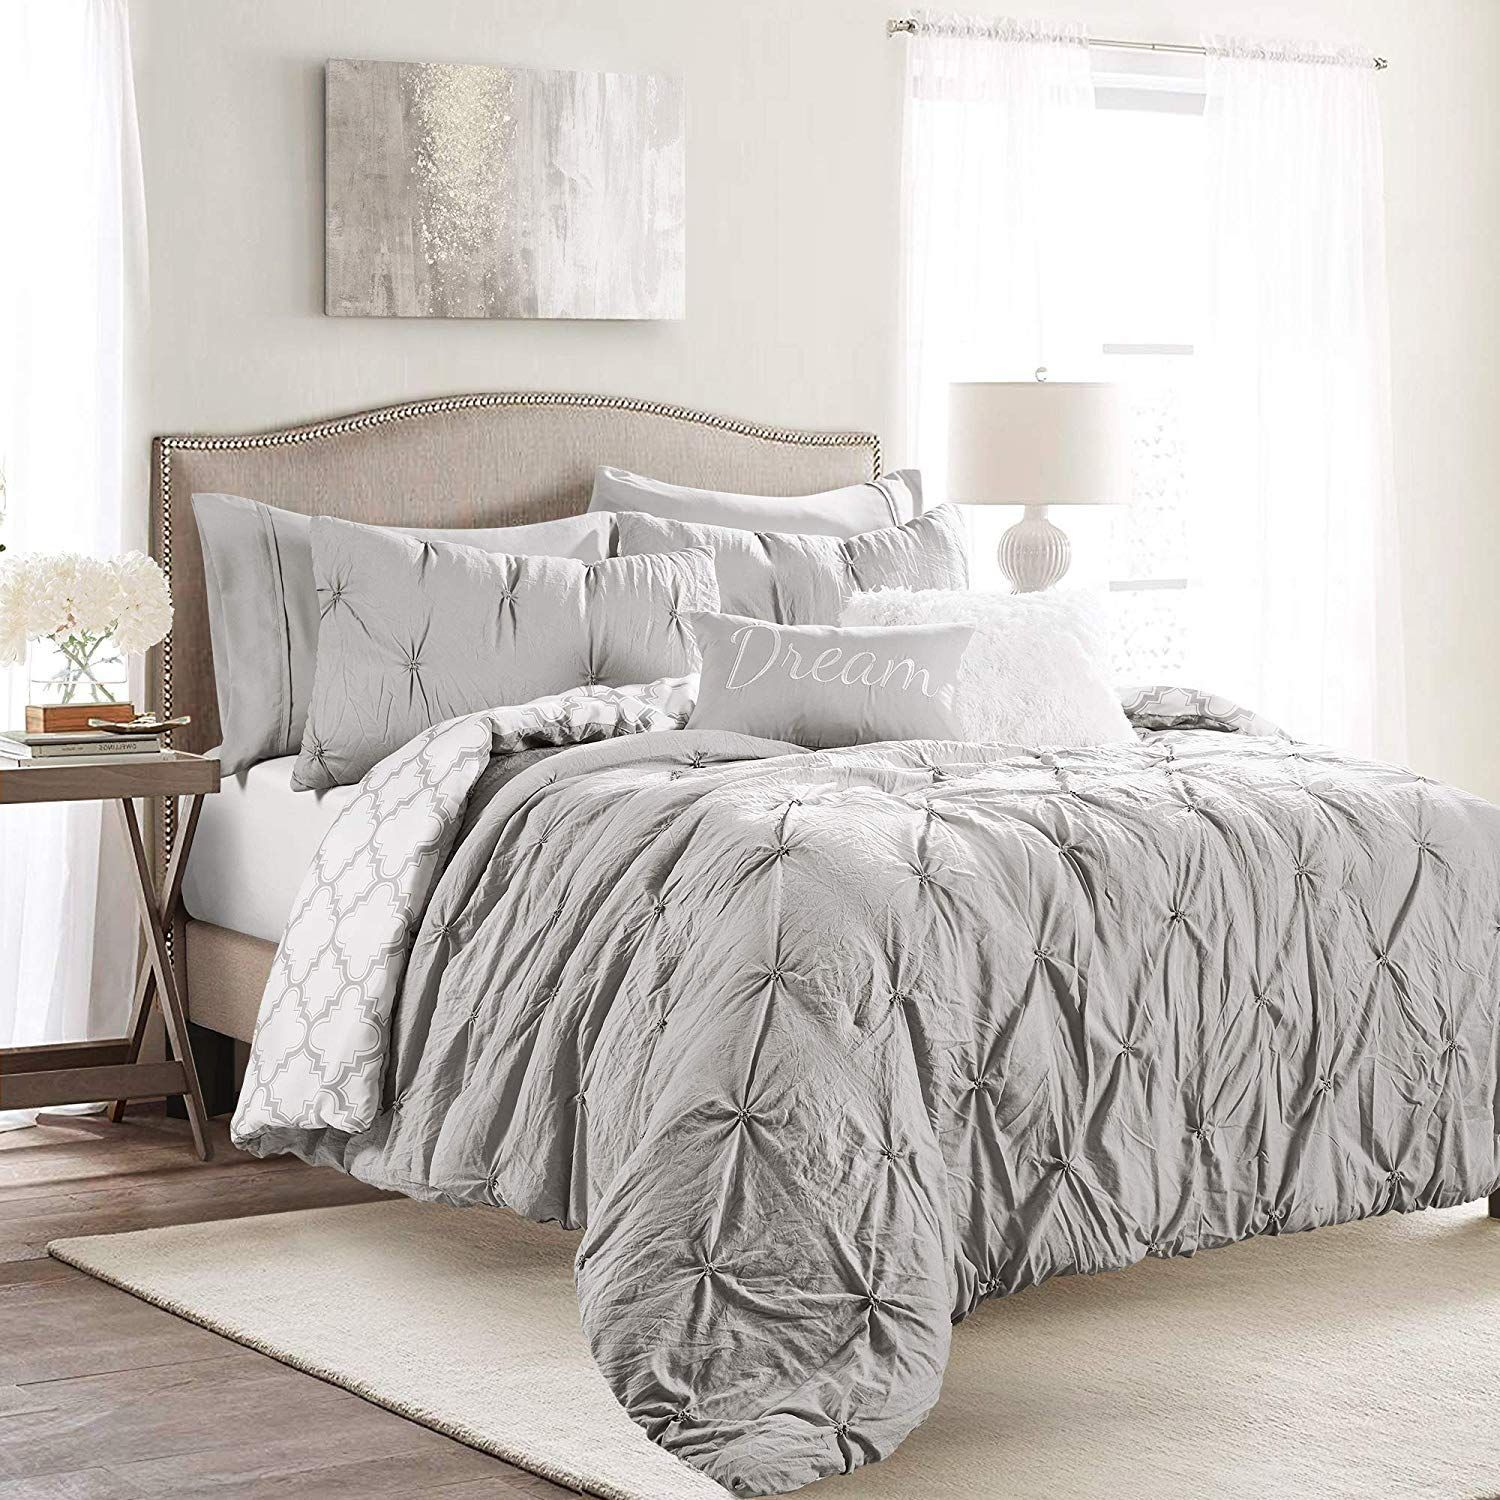 Farmhouse Comforters Rustic Comforters Farmhouse Goals In 2020 Comforter Sets Simple Room Farmhouse Bedding Sets